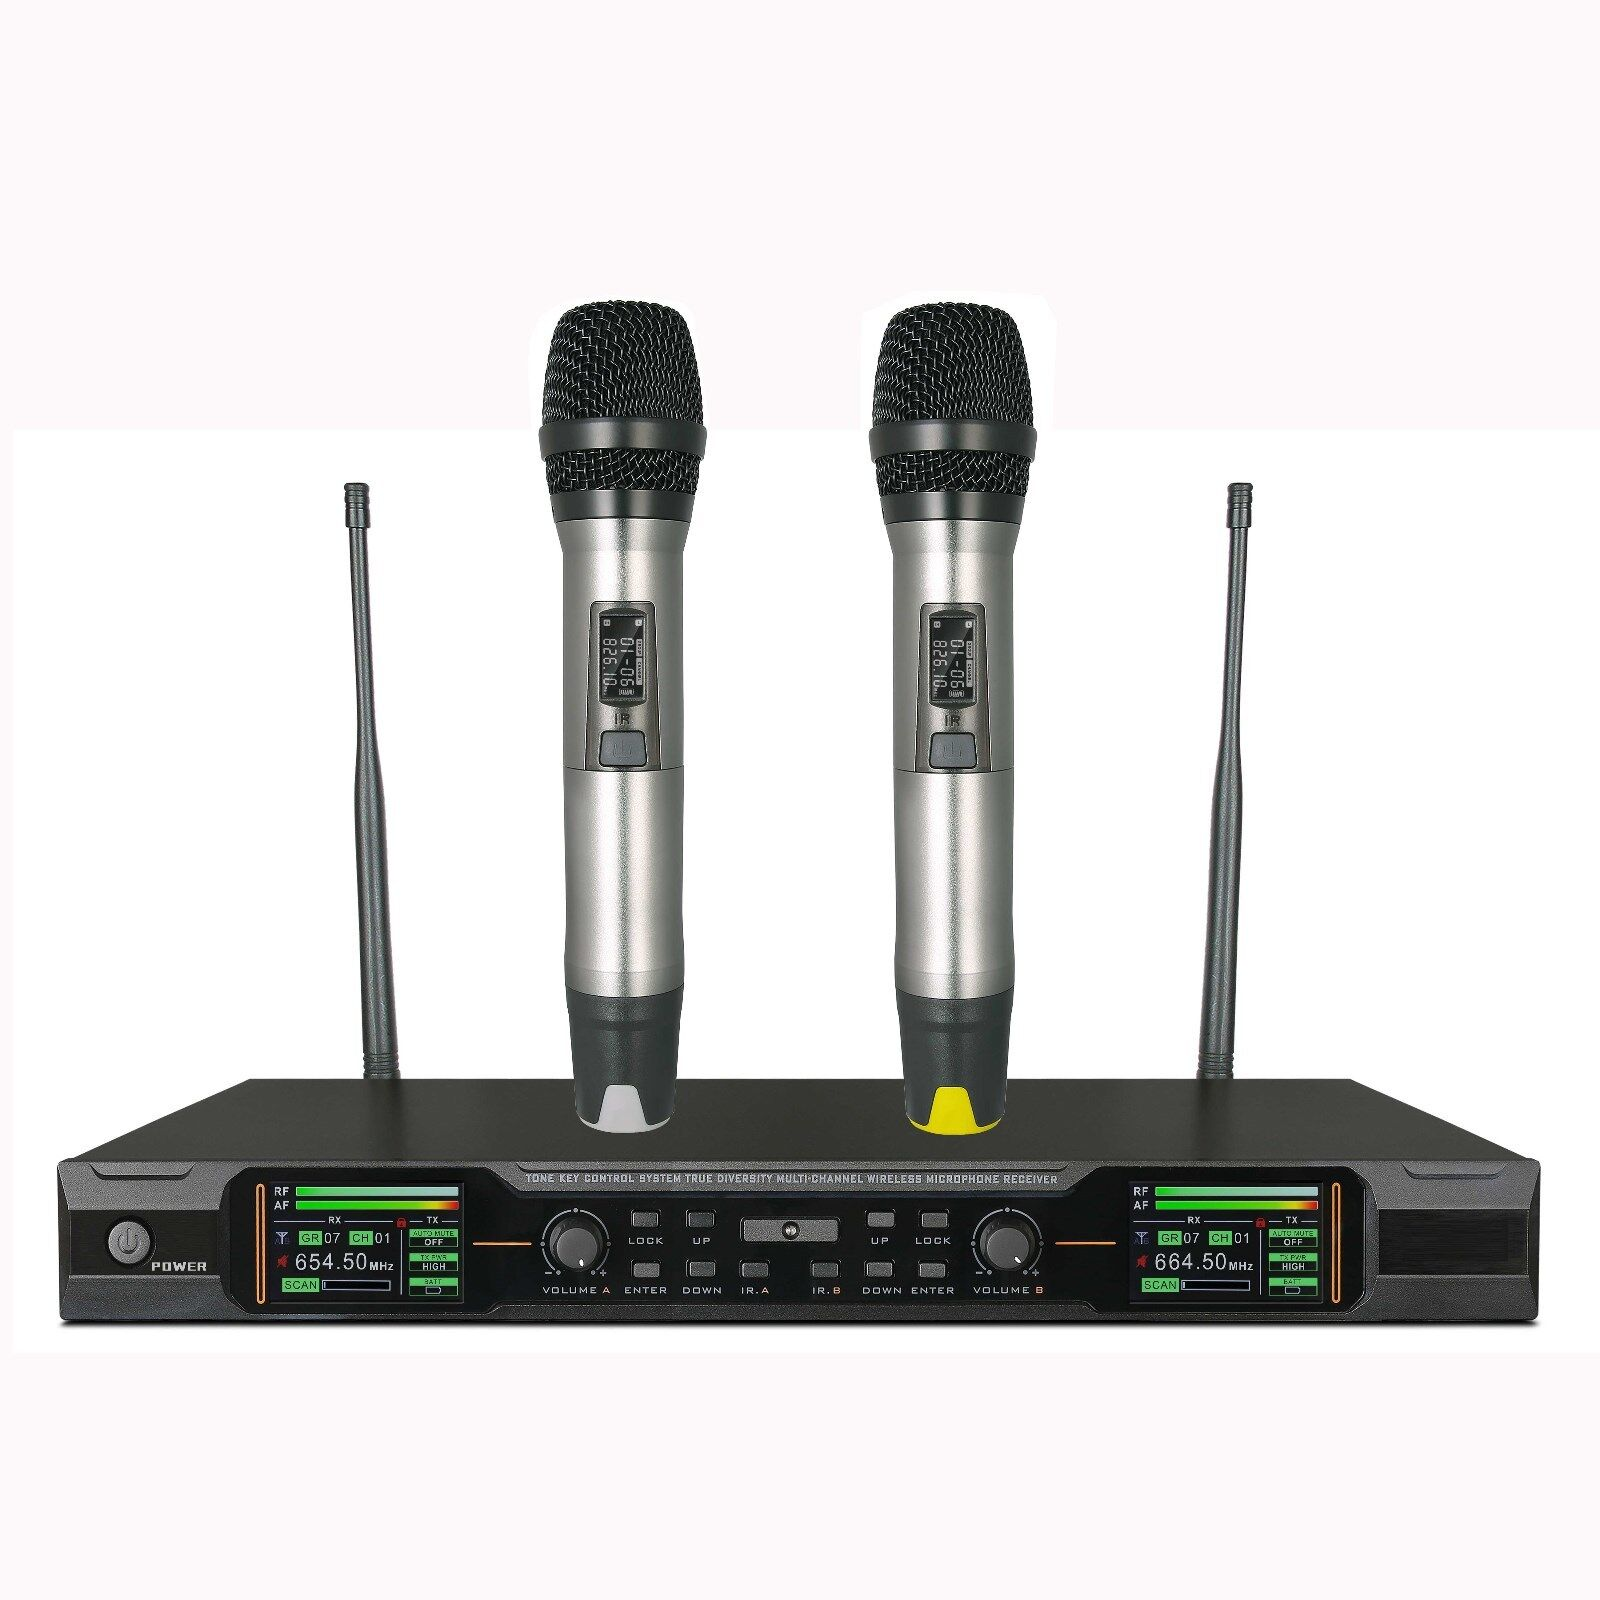 UHF Wireless Vocal Microphone System Auto Mute Handheld mic Microphone for Shure